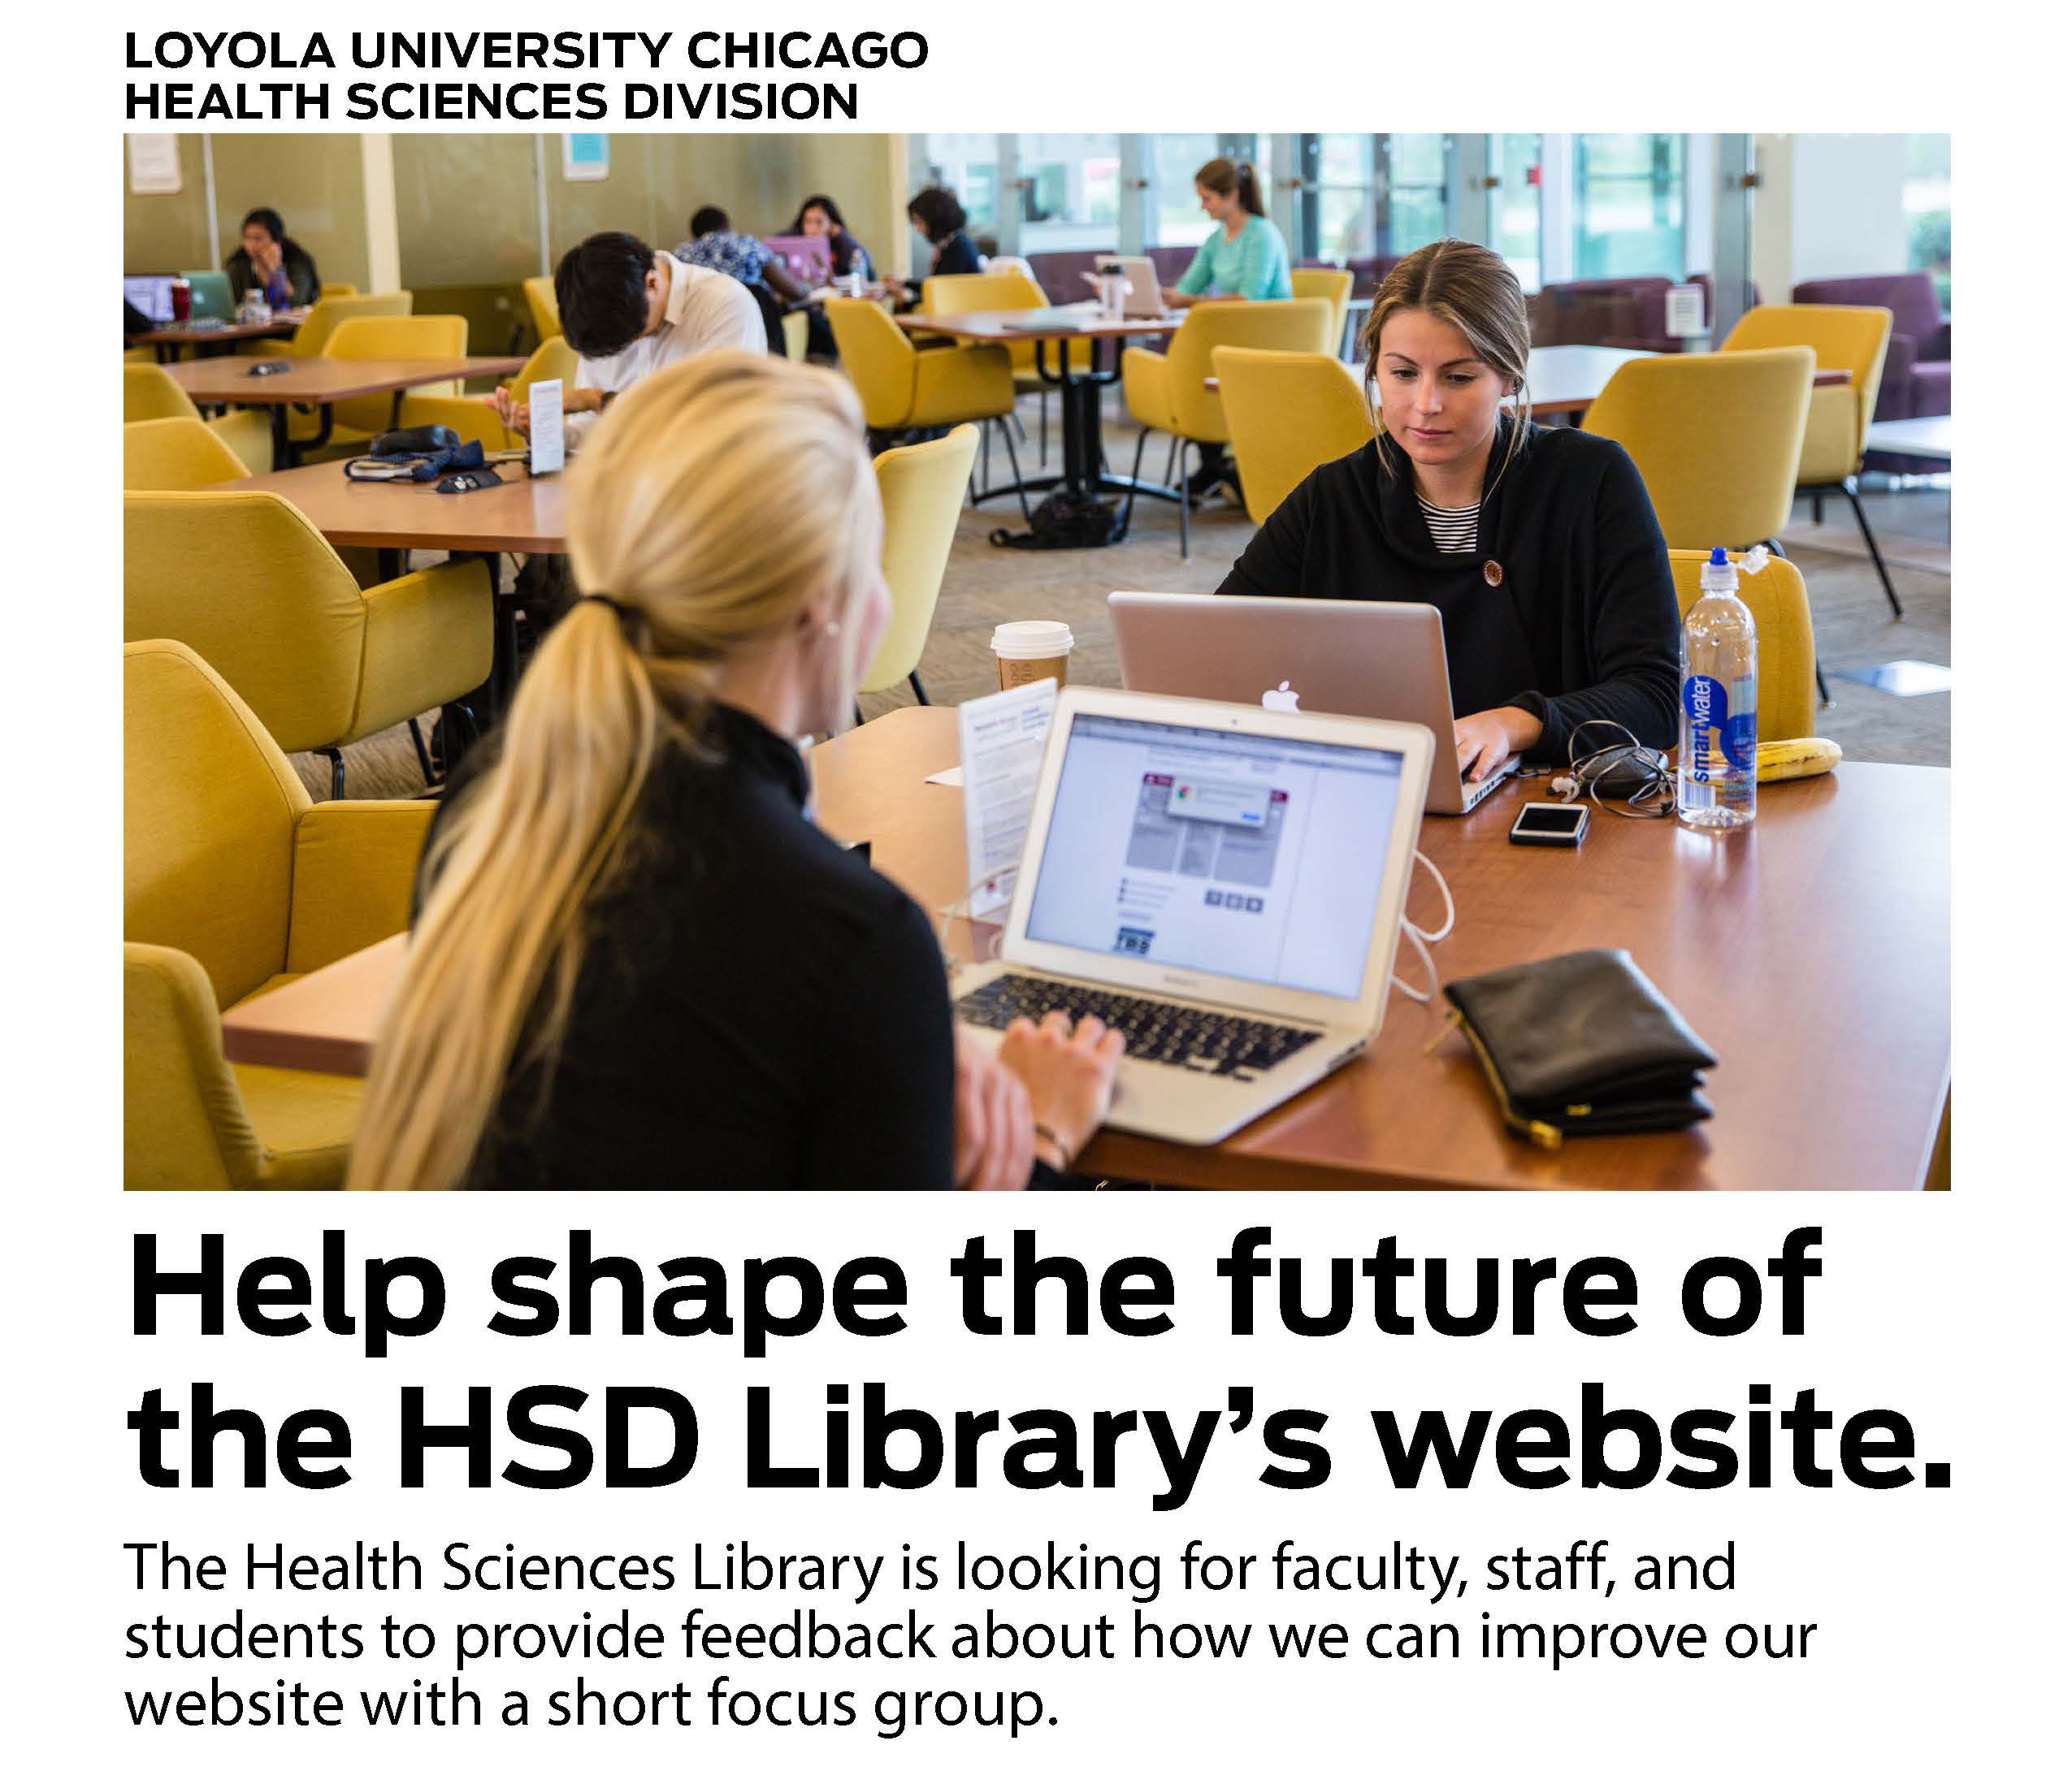 loyola university health sciences library hsd library website focus groups